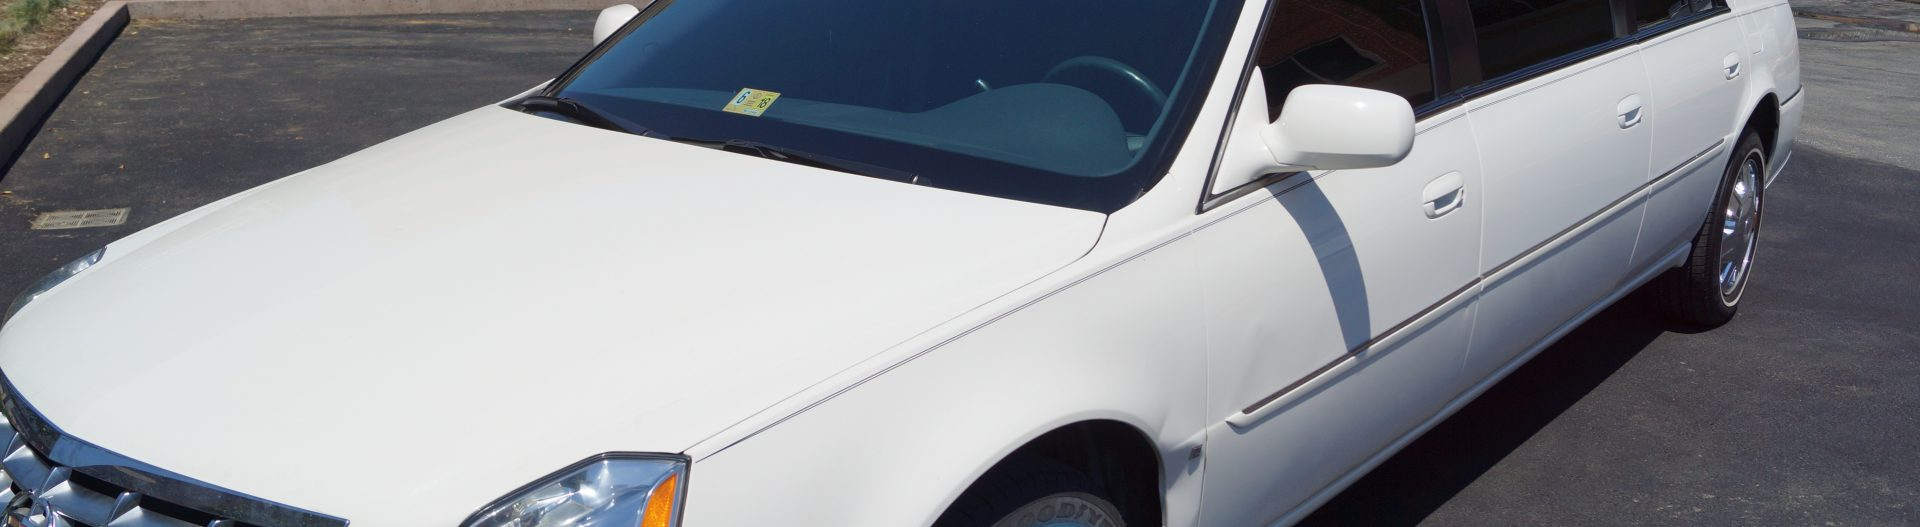 2008 Cadillac STS Superior Limo